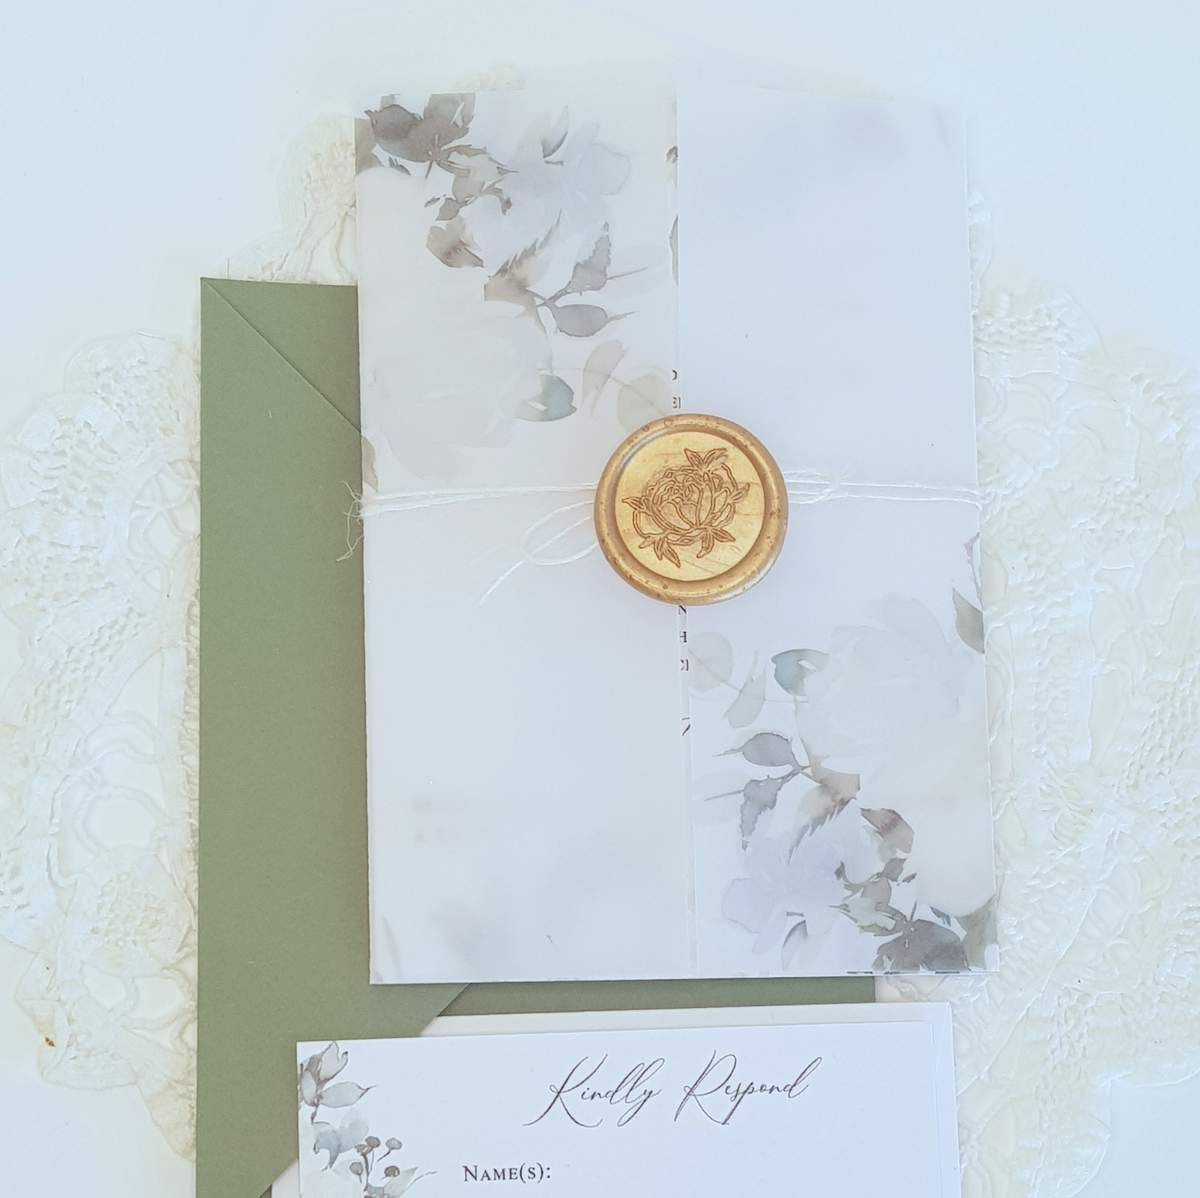 Wedding invitation with a floral printed vellum jacket tied around with twine and a gold wax seal